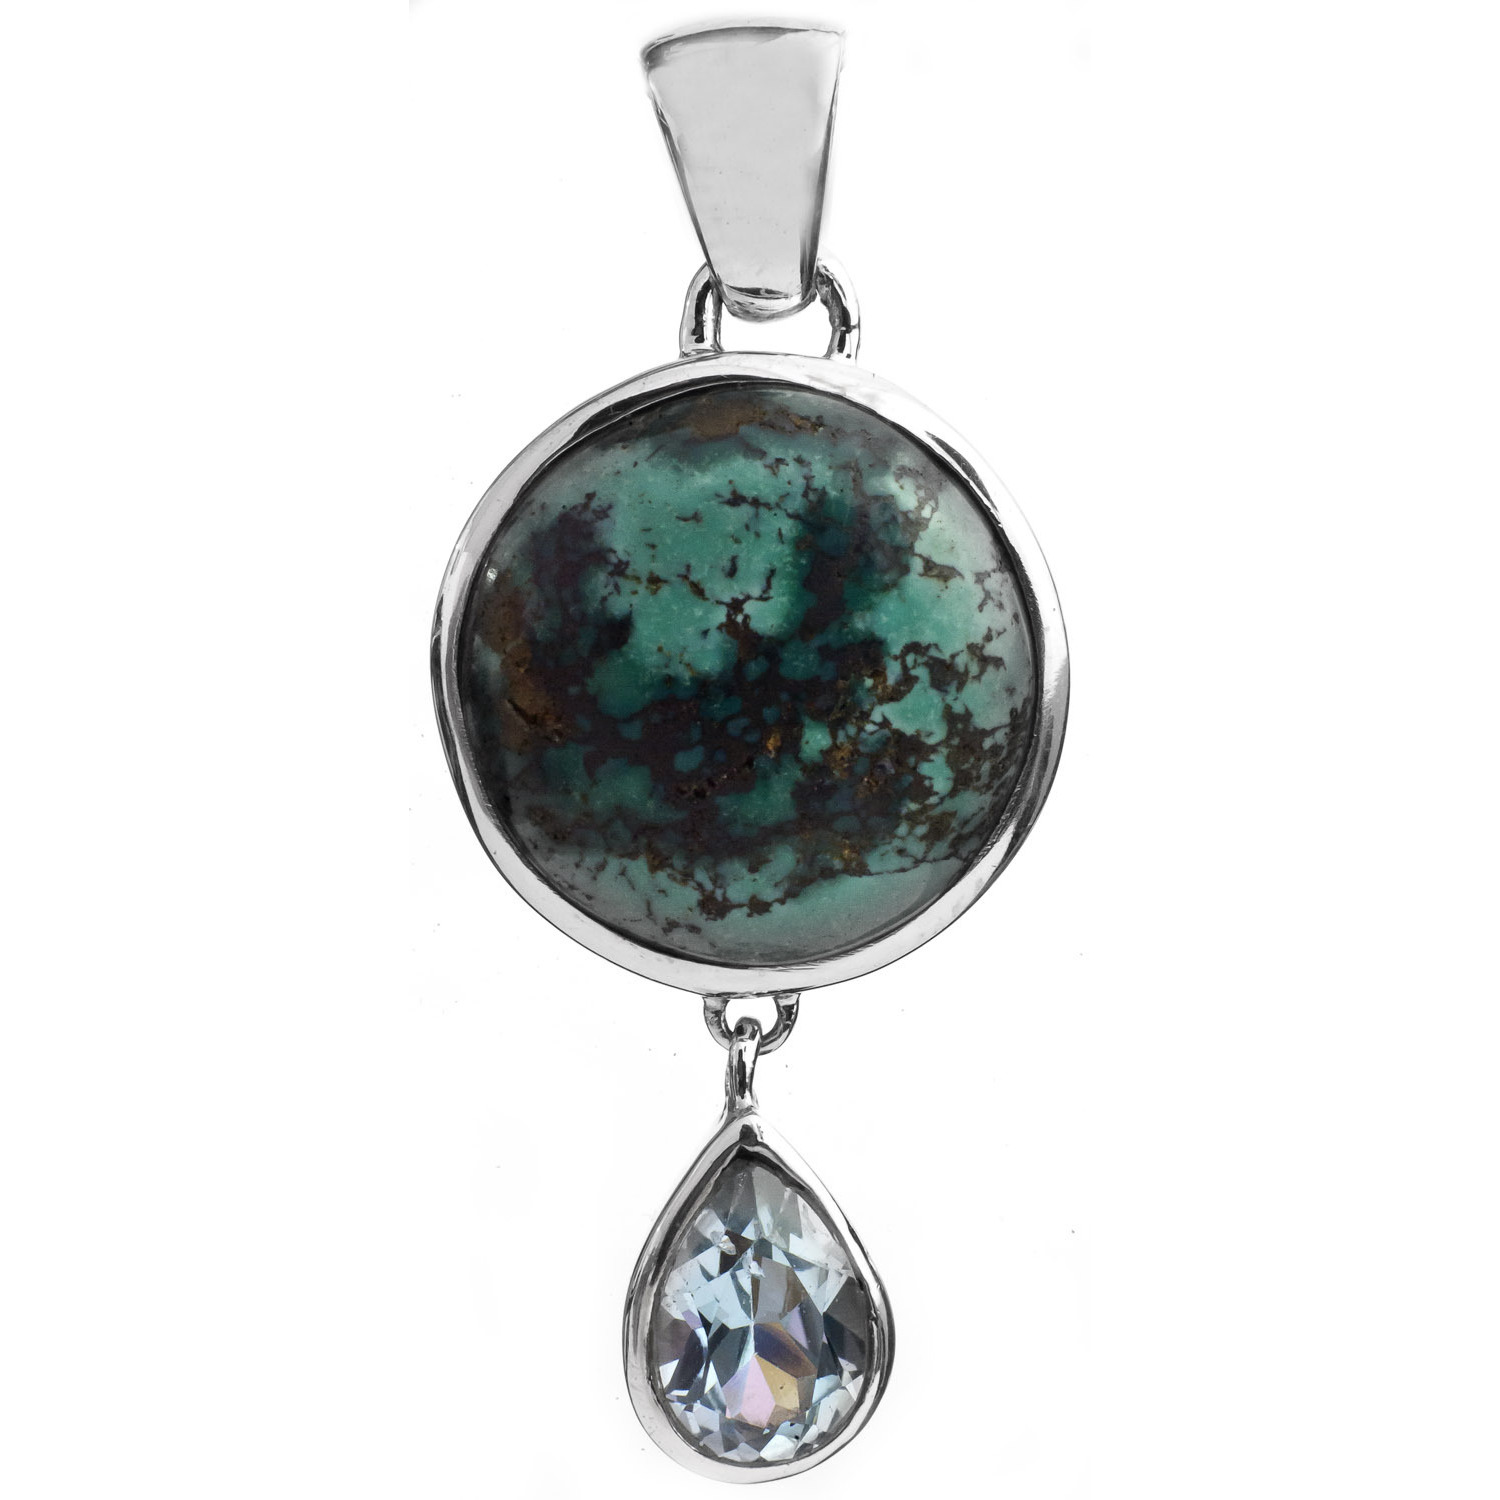 Spider's Web Turquoise Pendant with BT